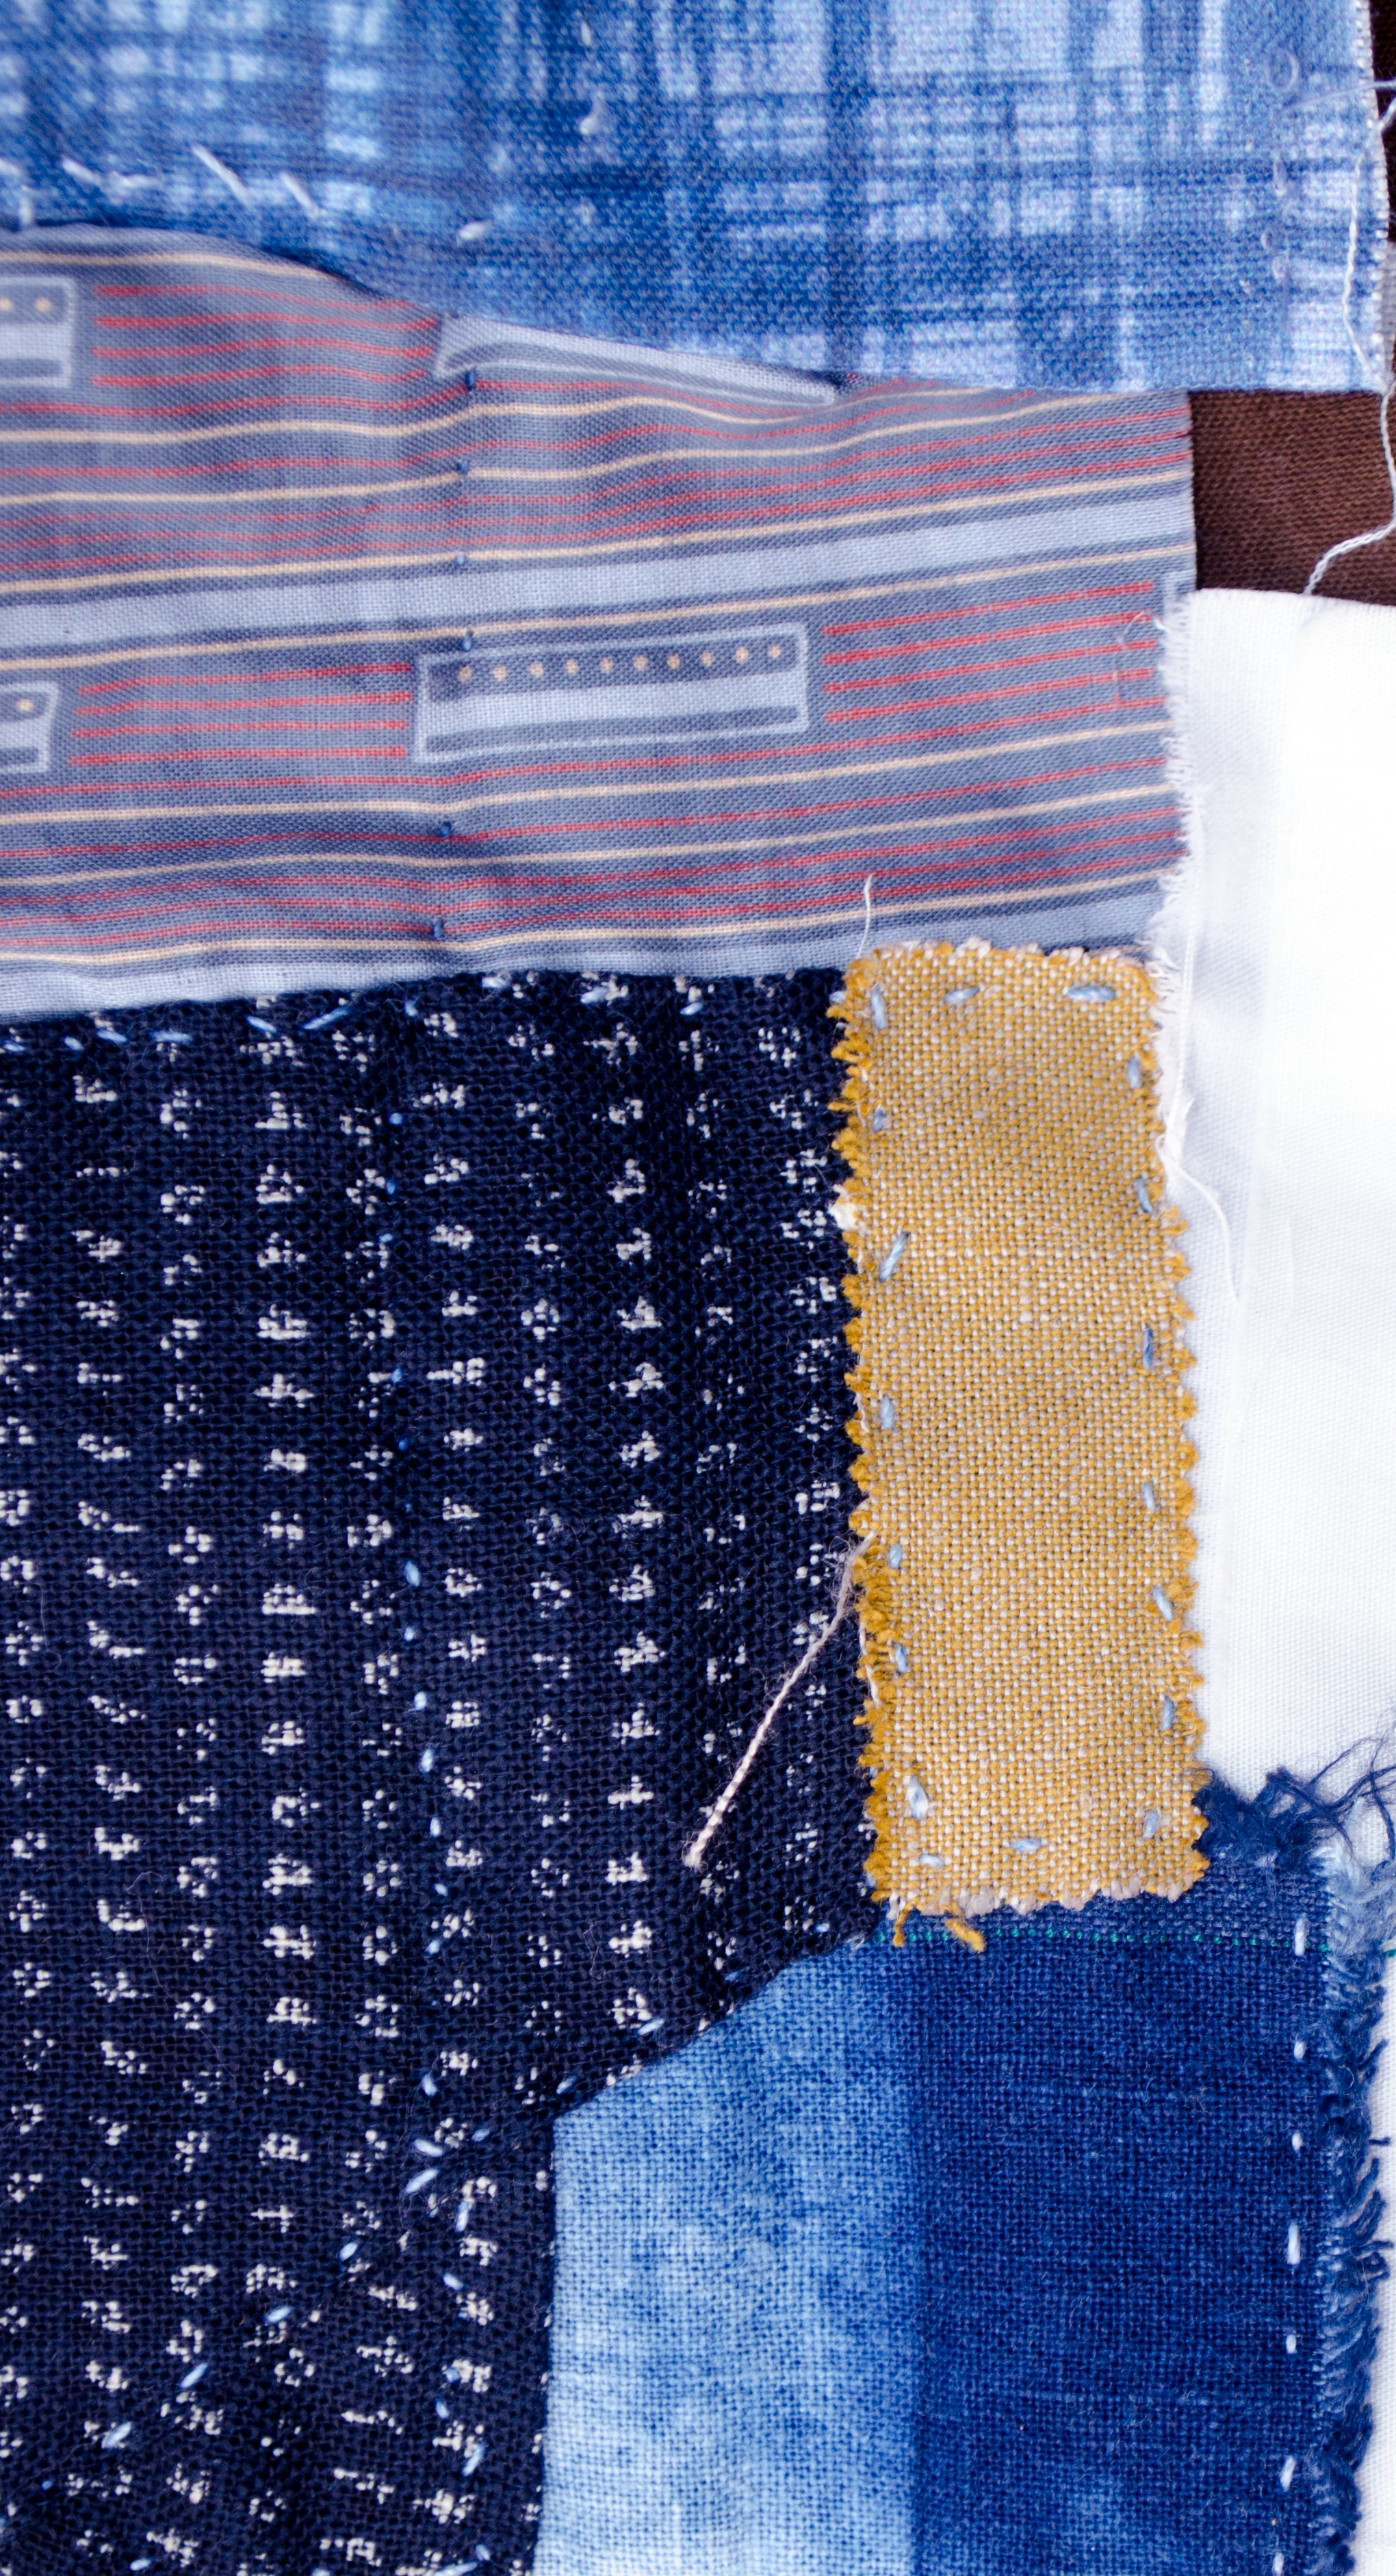 Bits of linen and cotton, shibori dyed and block printed stitched to patch an old jacket in the boro style